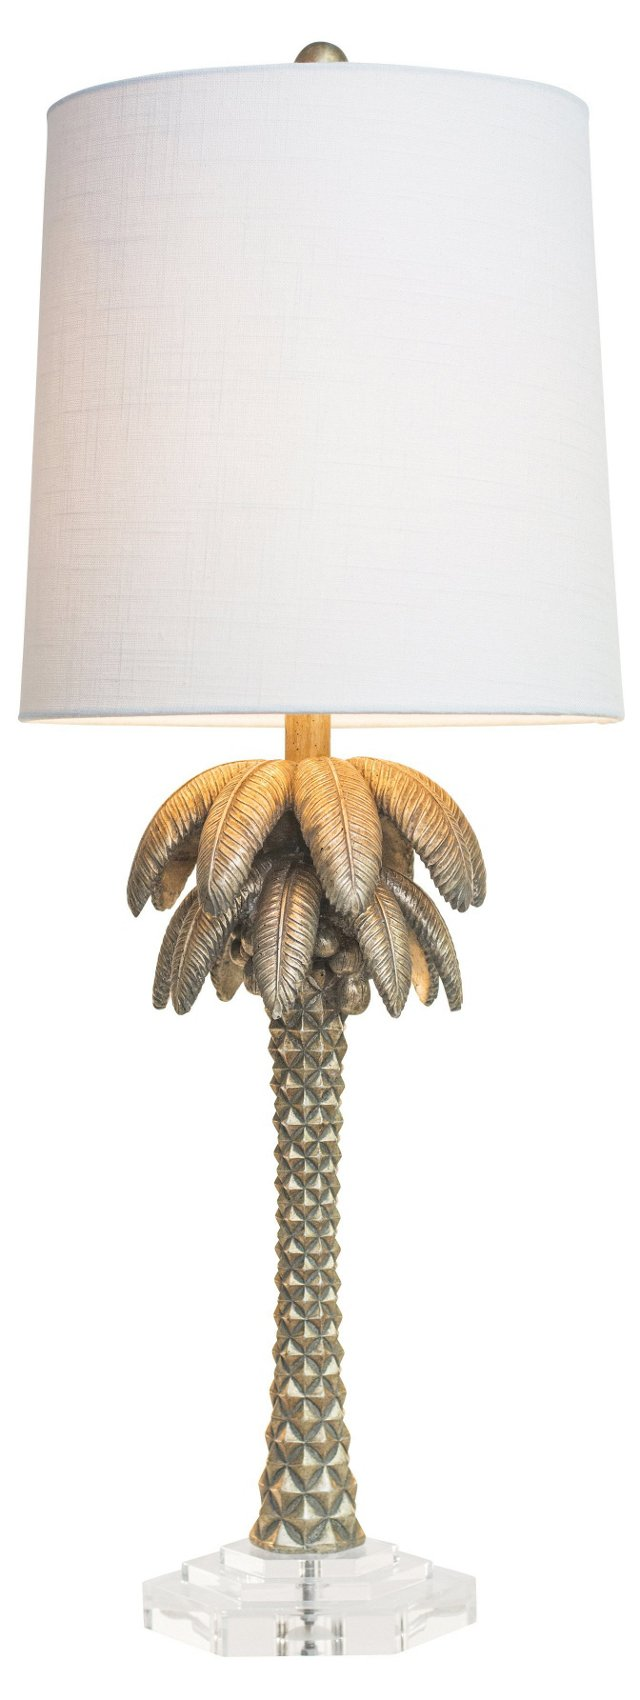 Siesta Table Lamp, DNU